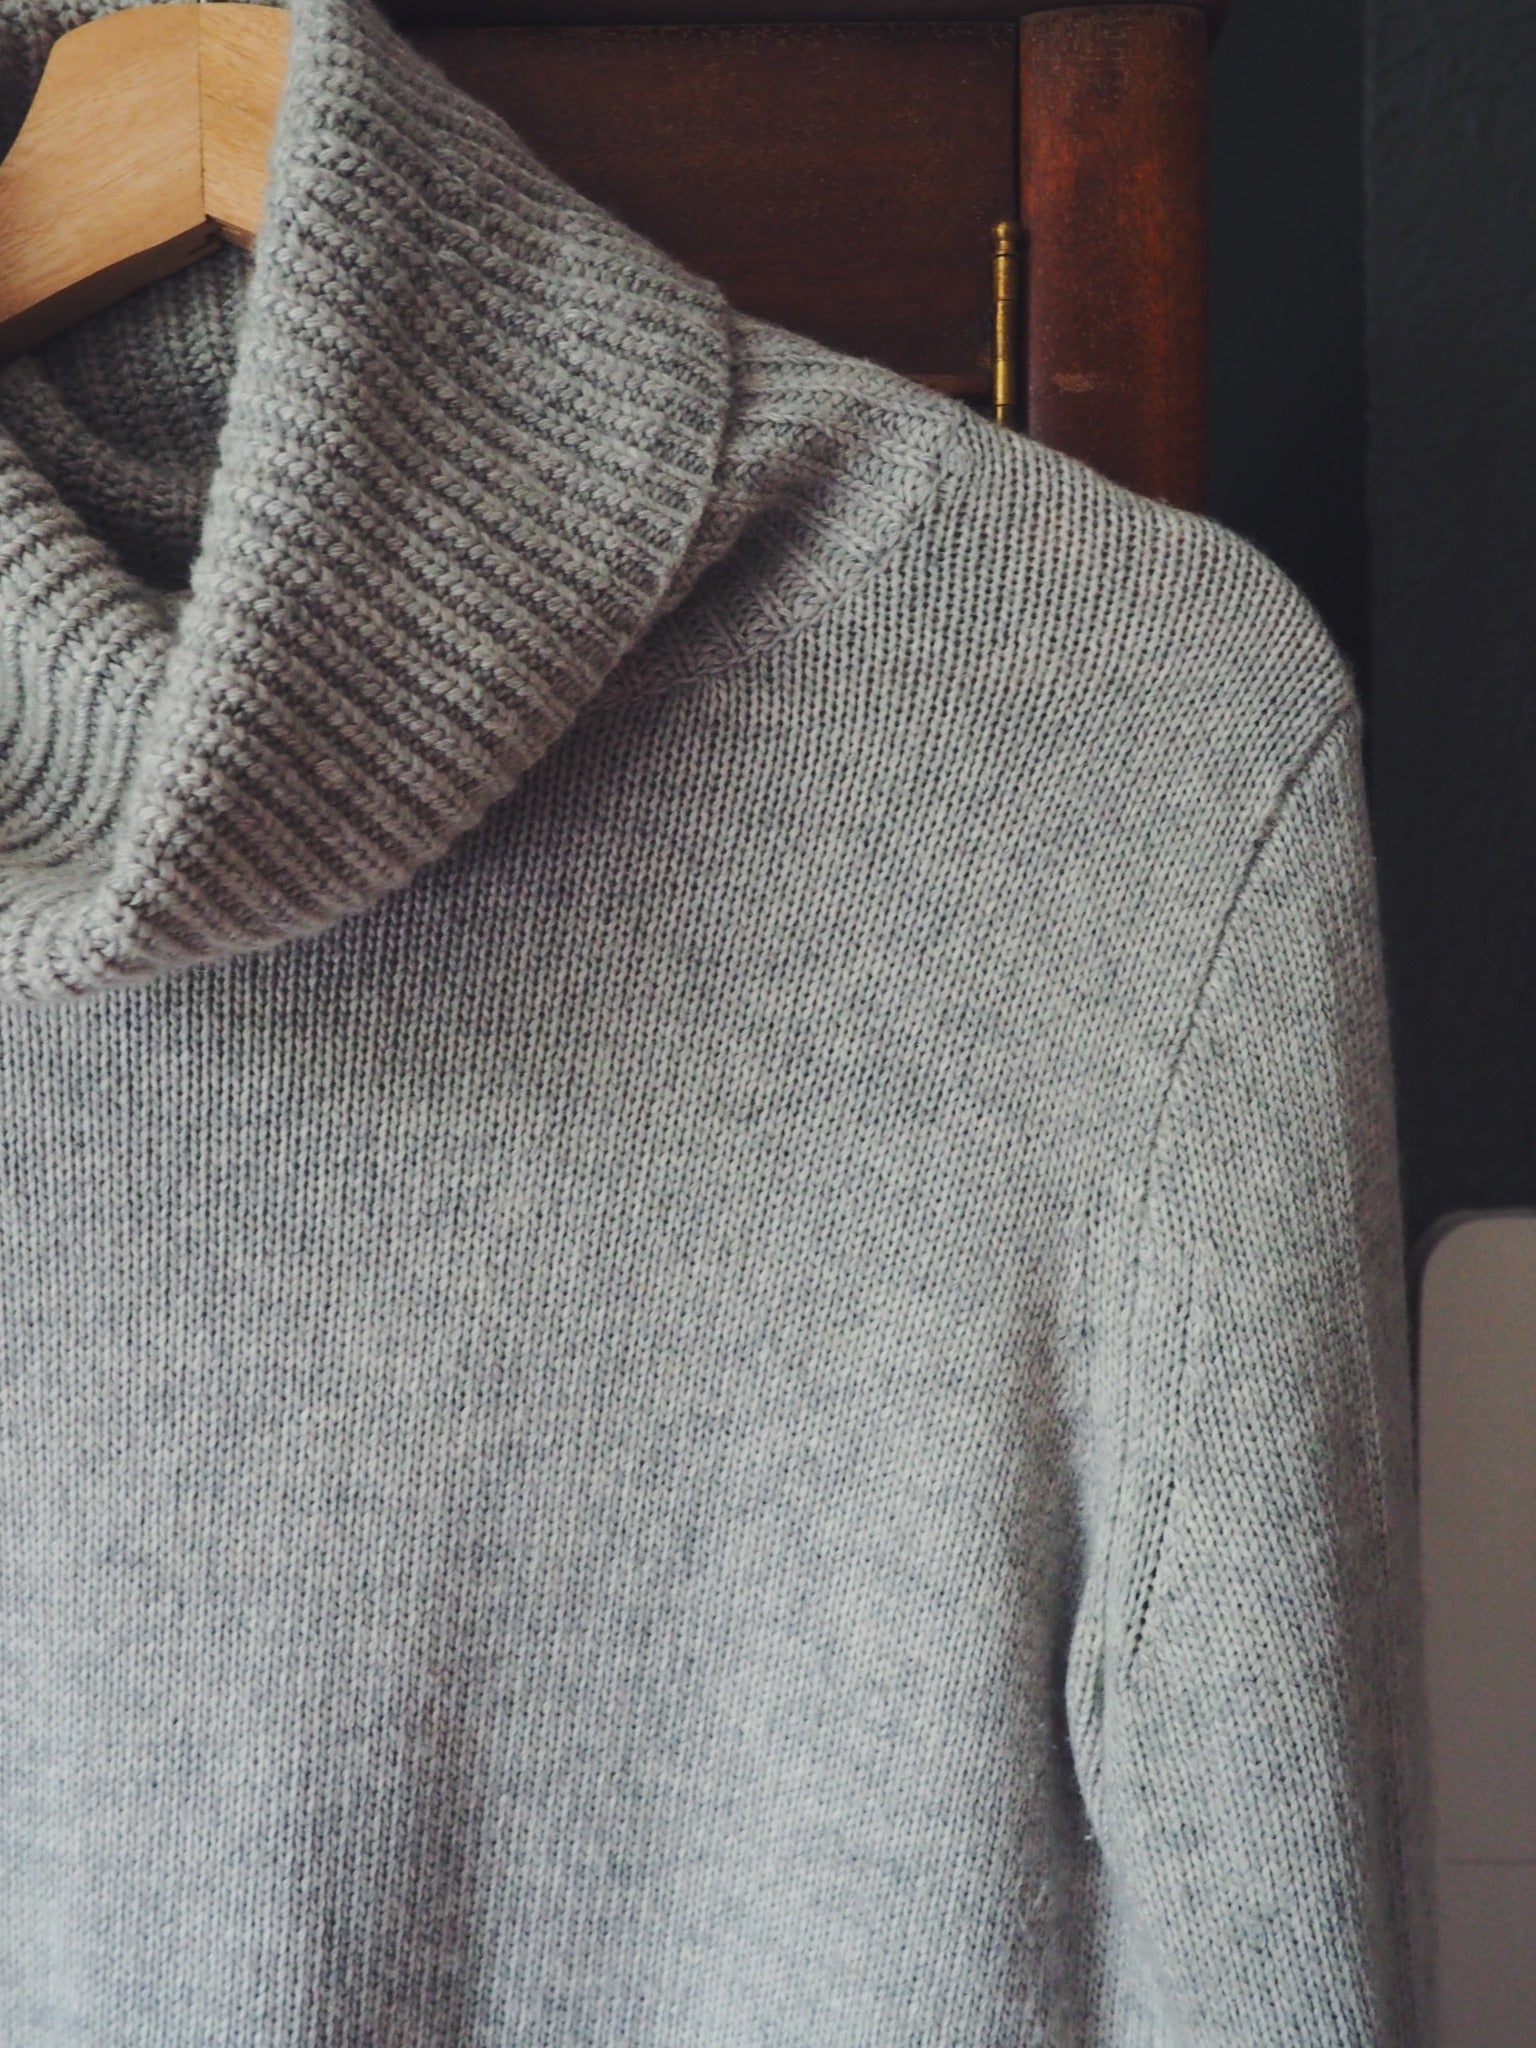 J.Crew Turtleneck Sweater